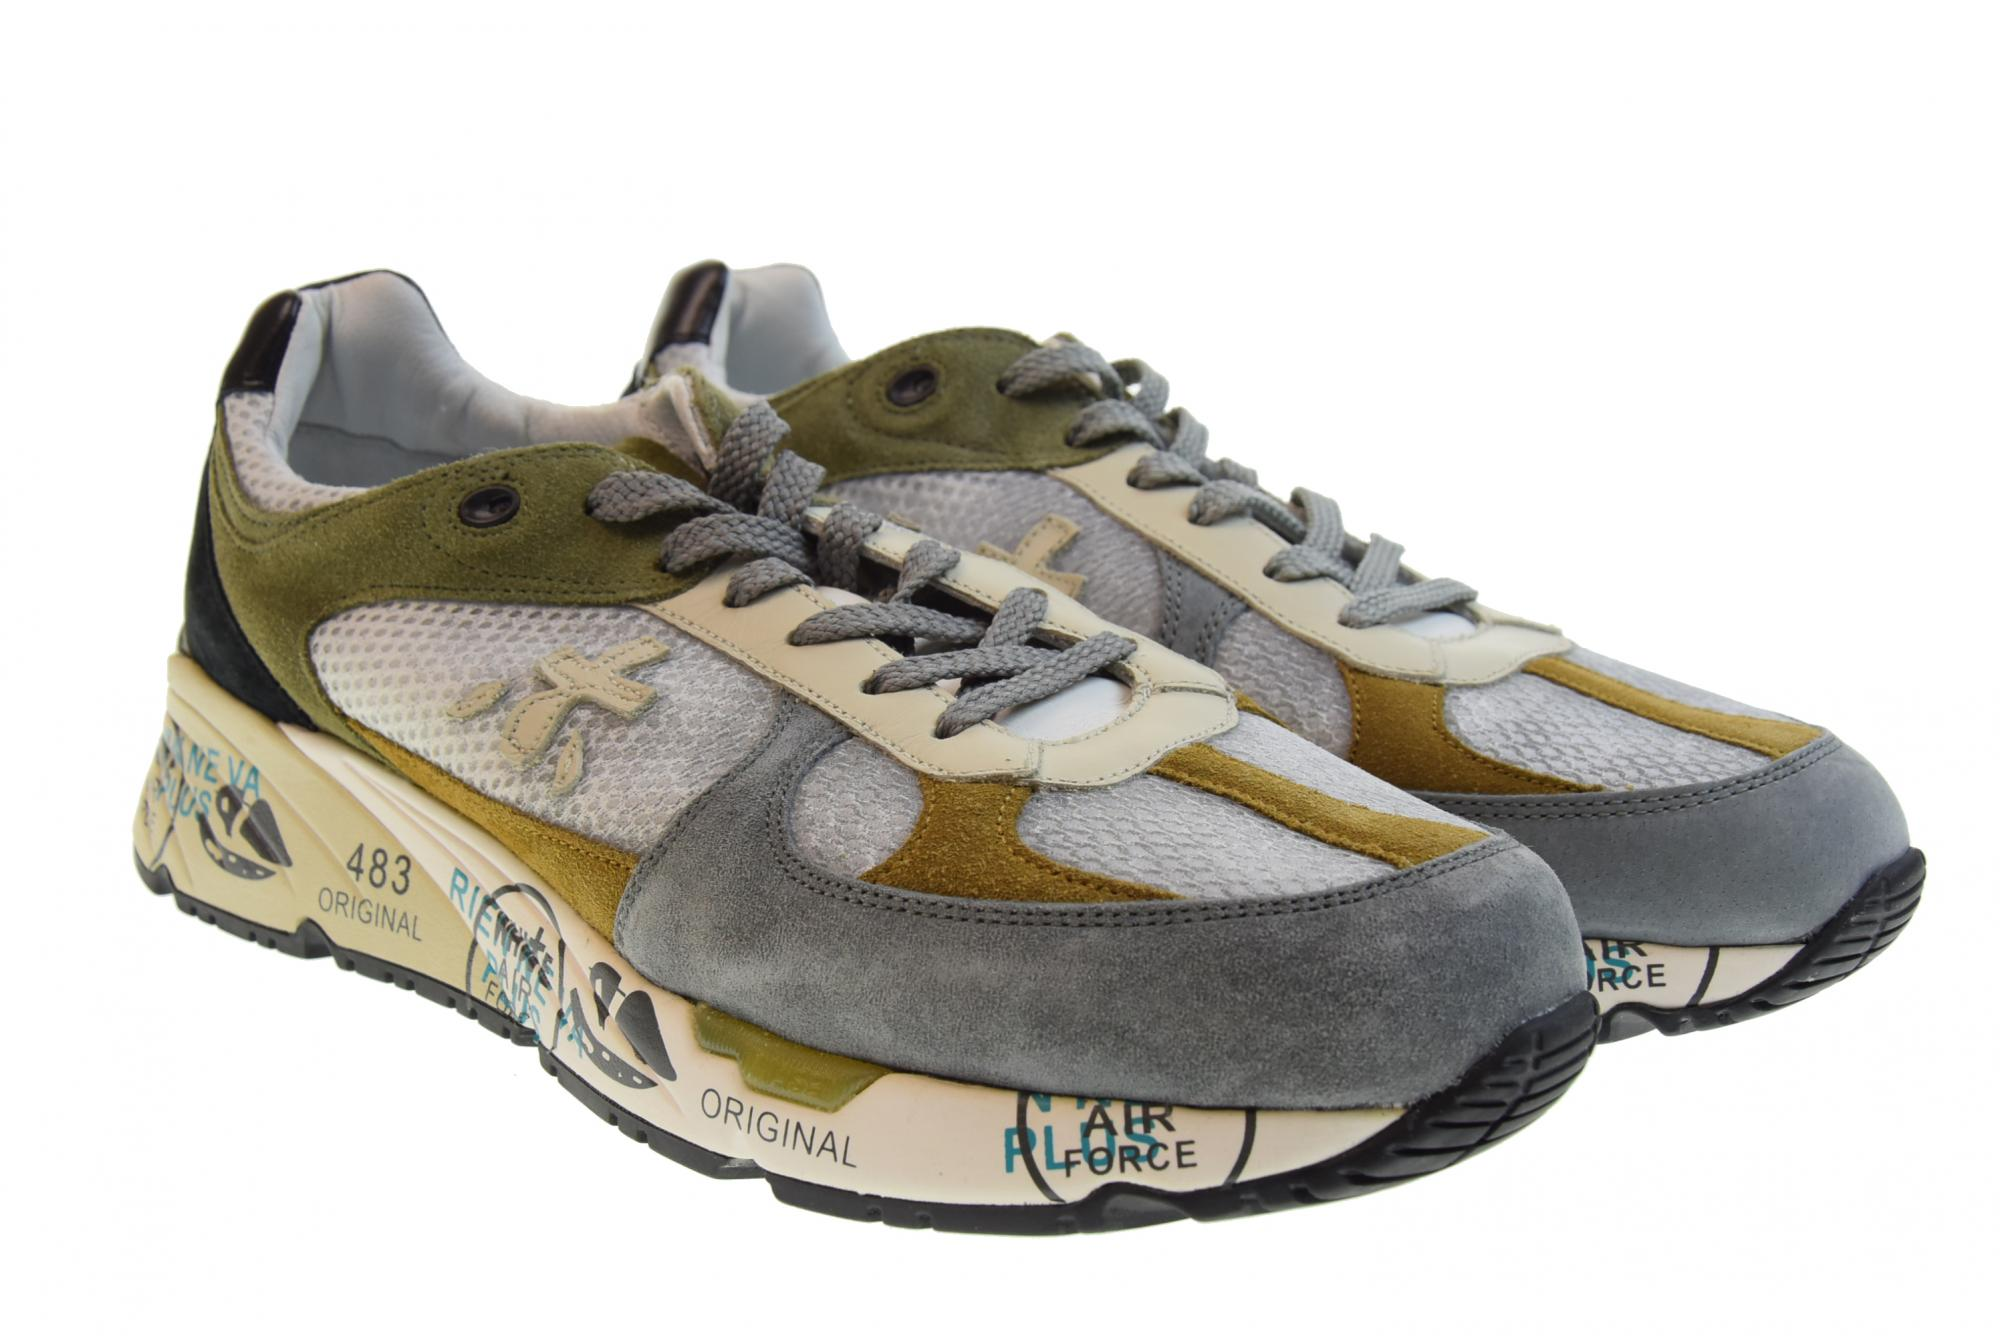 Details about Award Winning Shoes Man Sneakers Low Mase 3887 p19 show original title